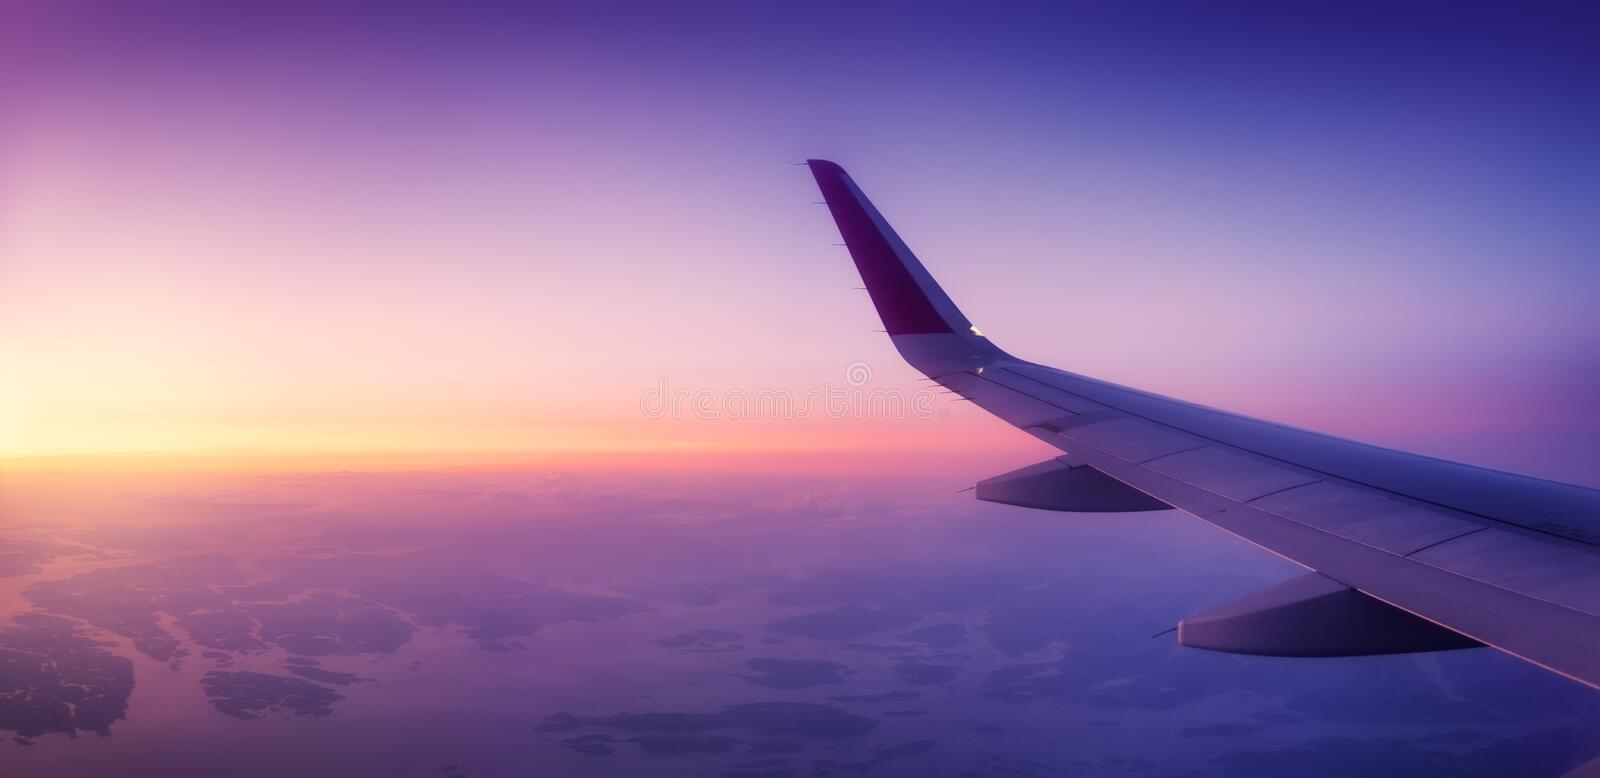 Aircraft wind on the sunrise sky background. Composition of aircraft. Air transport. Travel by airplane. Travel - image royalty free stock photo